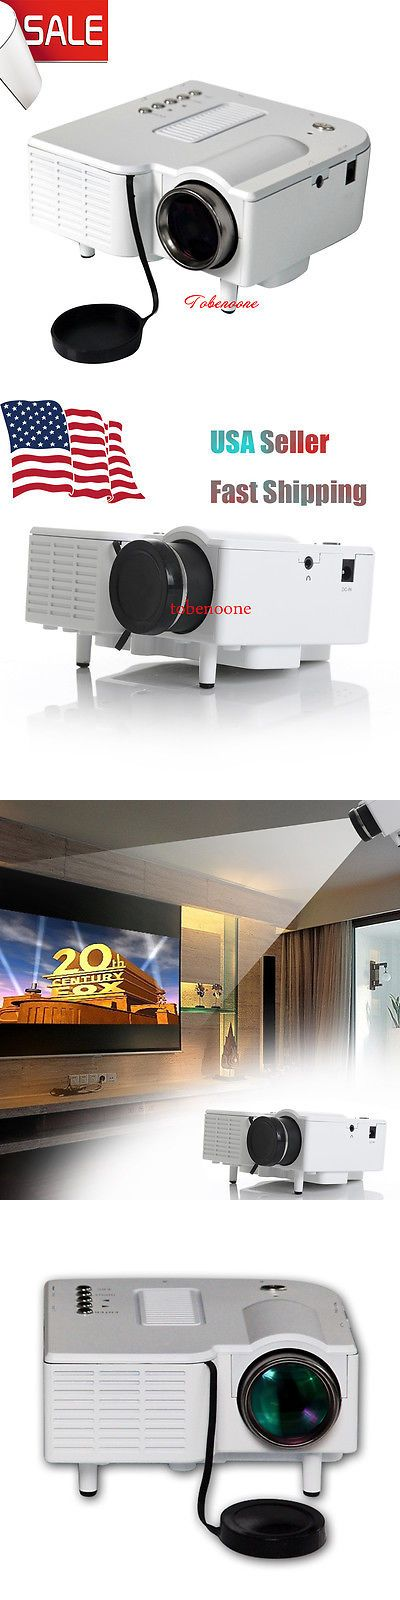 Home Theater Projectors: Mini Portable Lcd Led Proyector Projector Pc Laptop Vga/Usb Hd 1080P Usb Hdmi To BUY IT NOW ONLY: $34.85